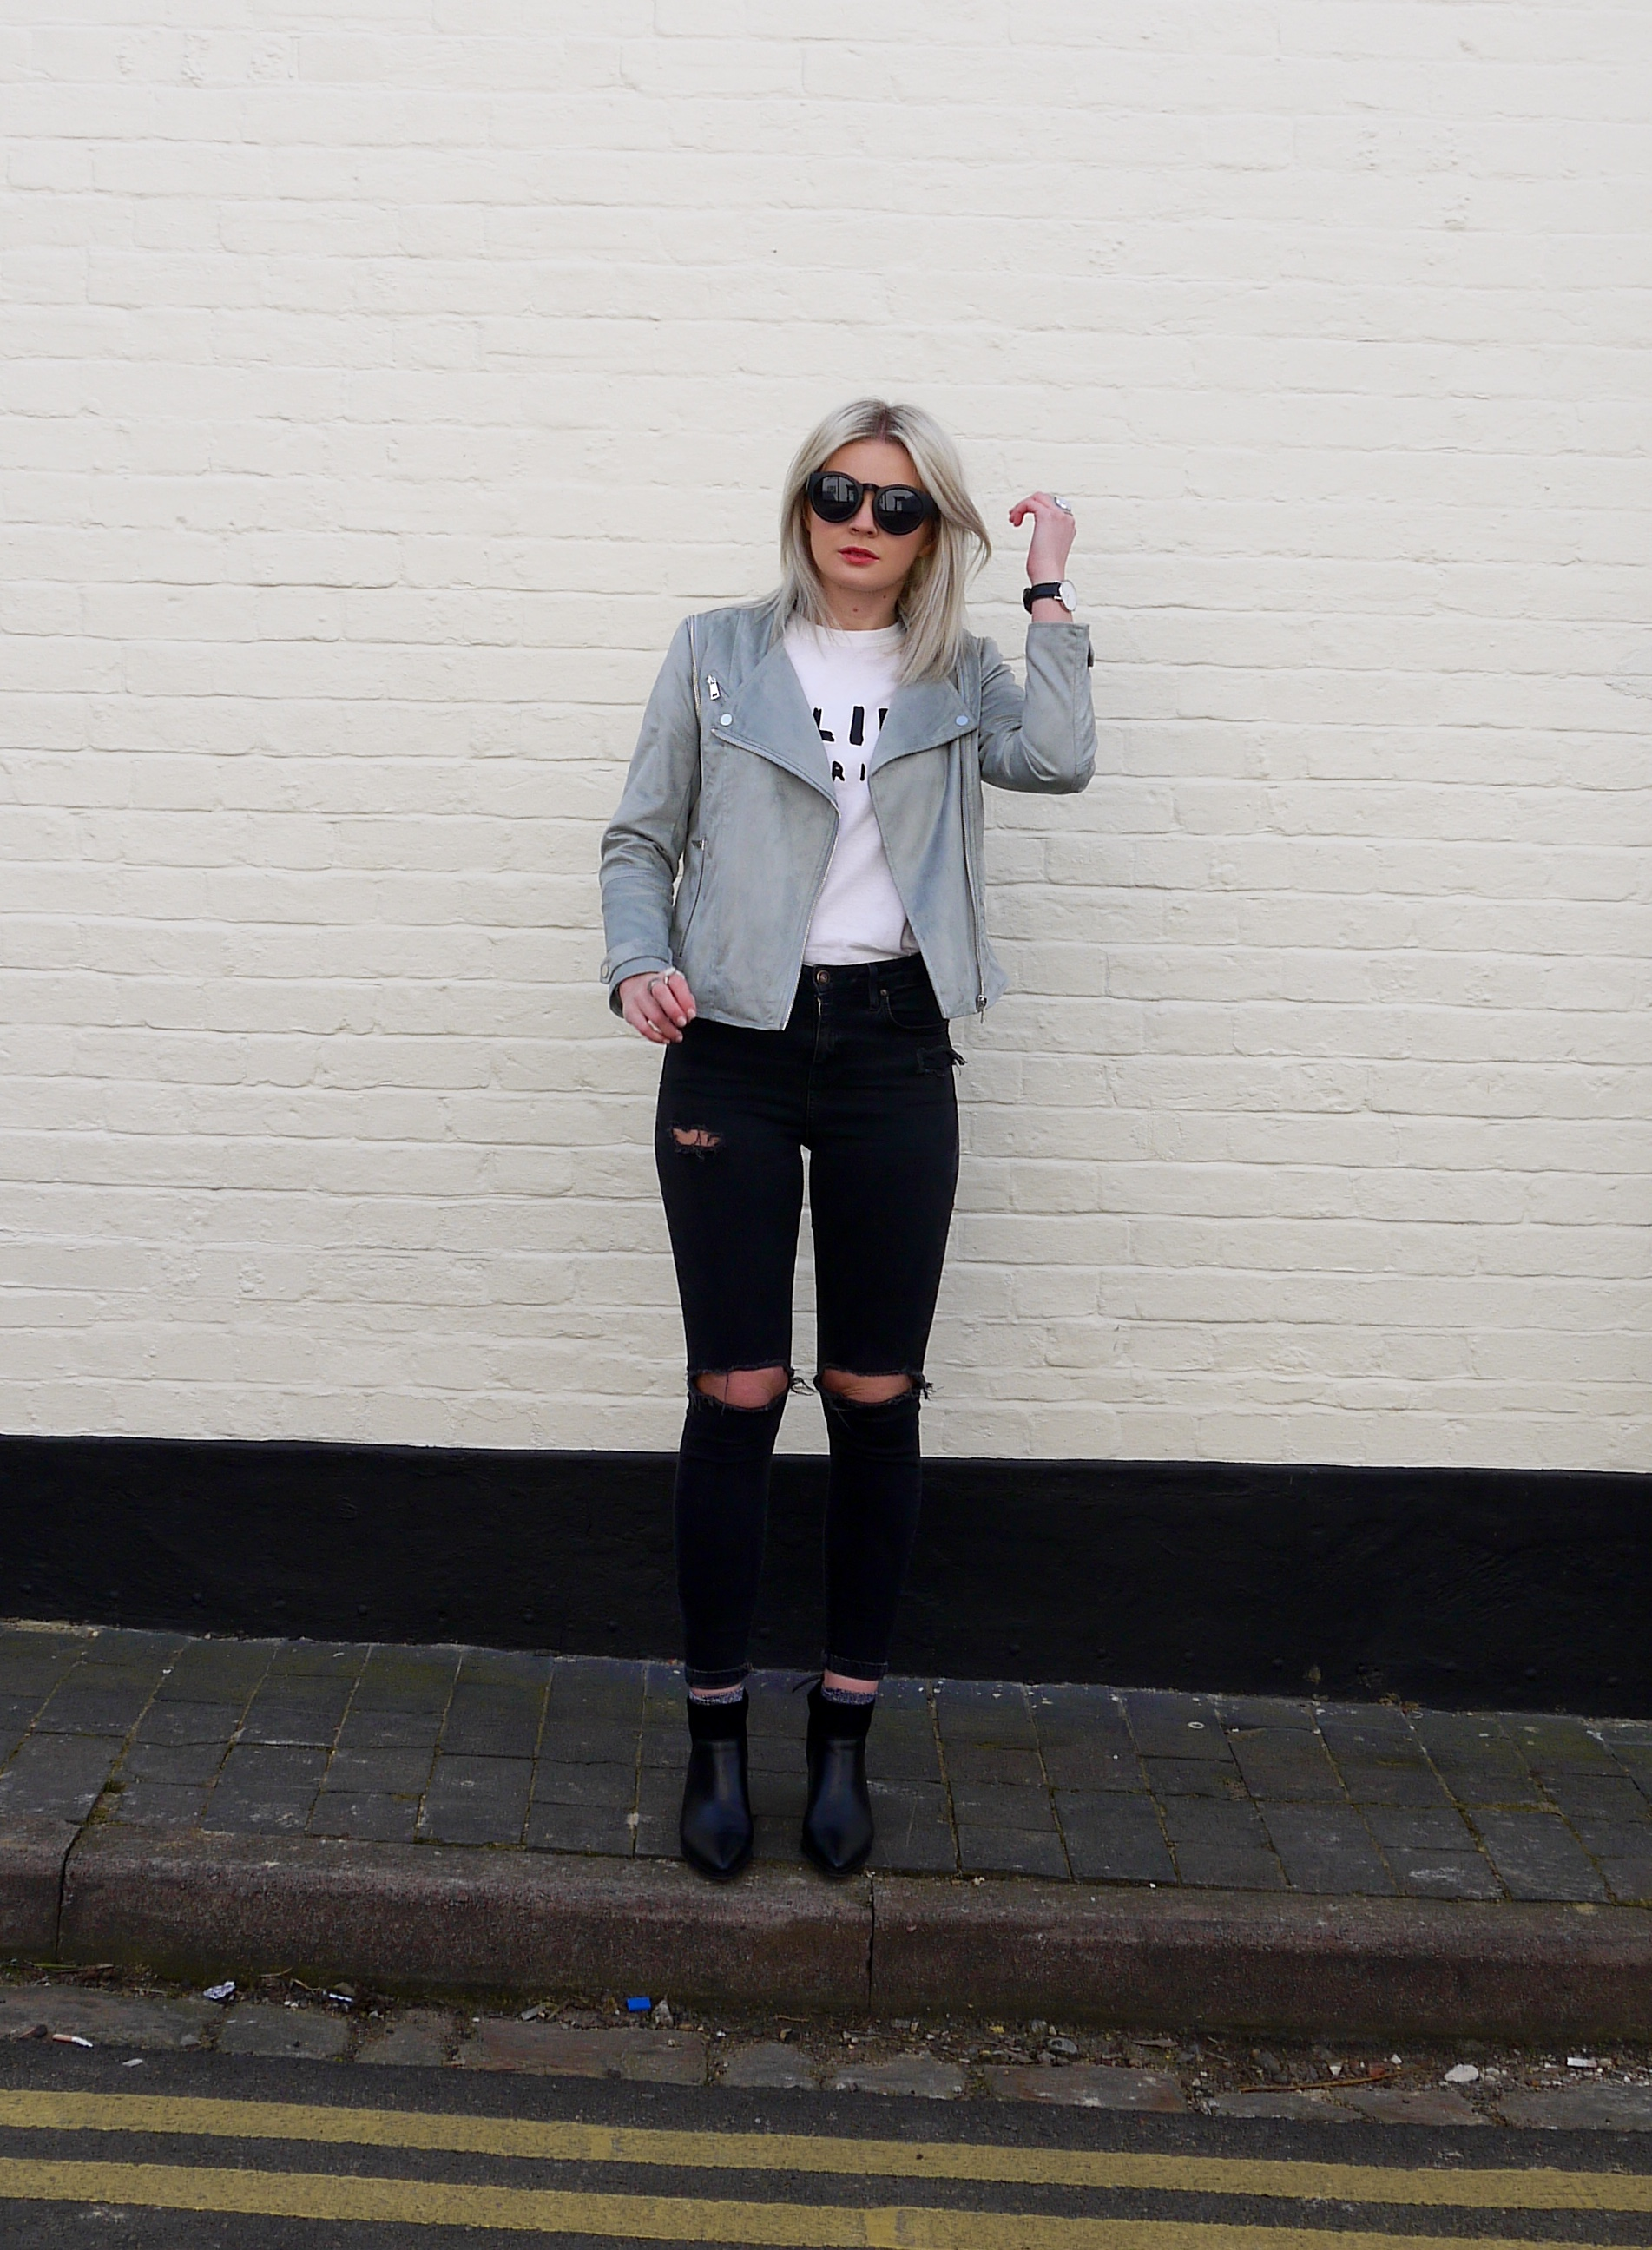 lauras little locket, laura byrnes, white celine t-shirt, grey suede biker jacket, black ripped jeans, black leather point boots